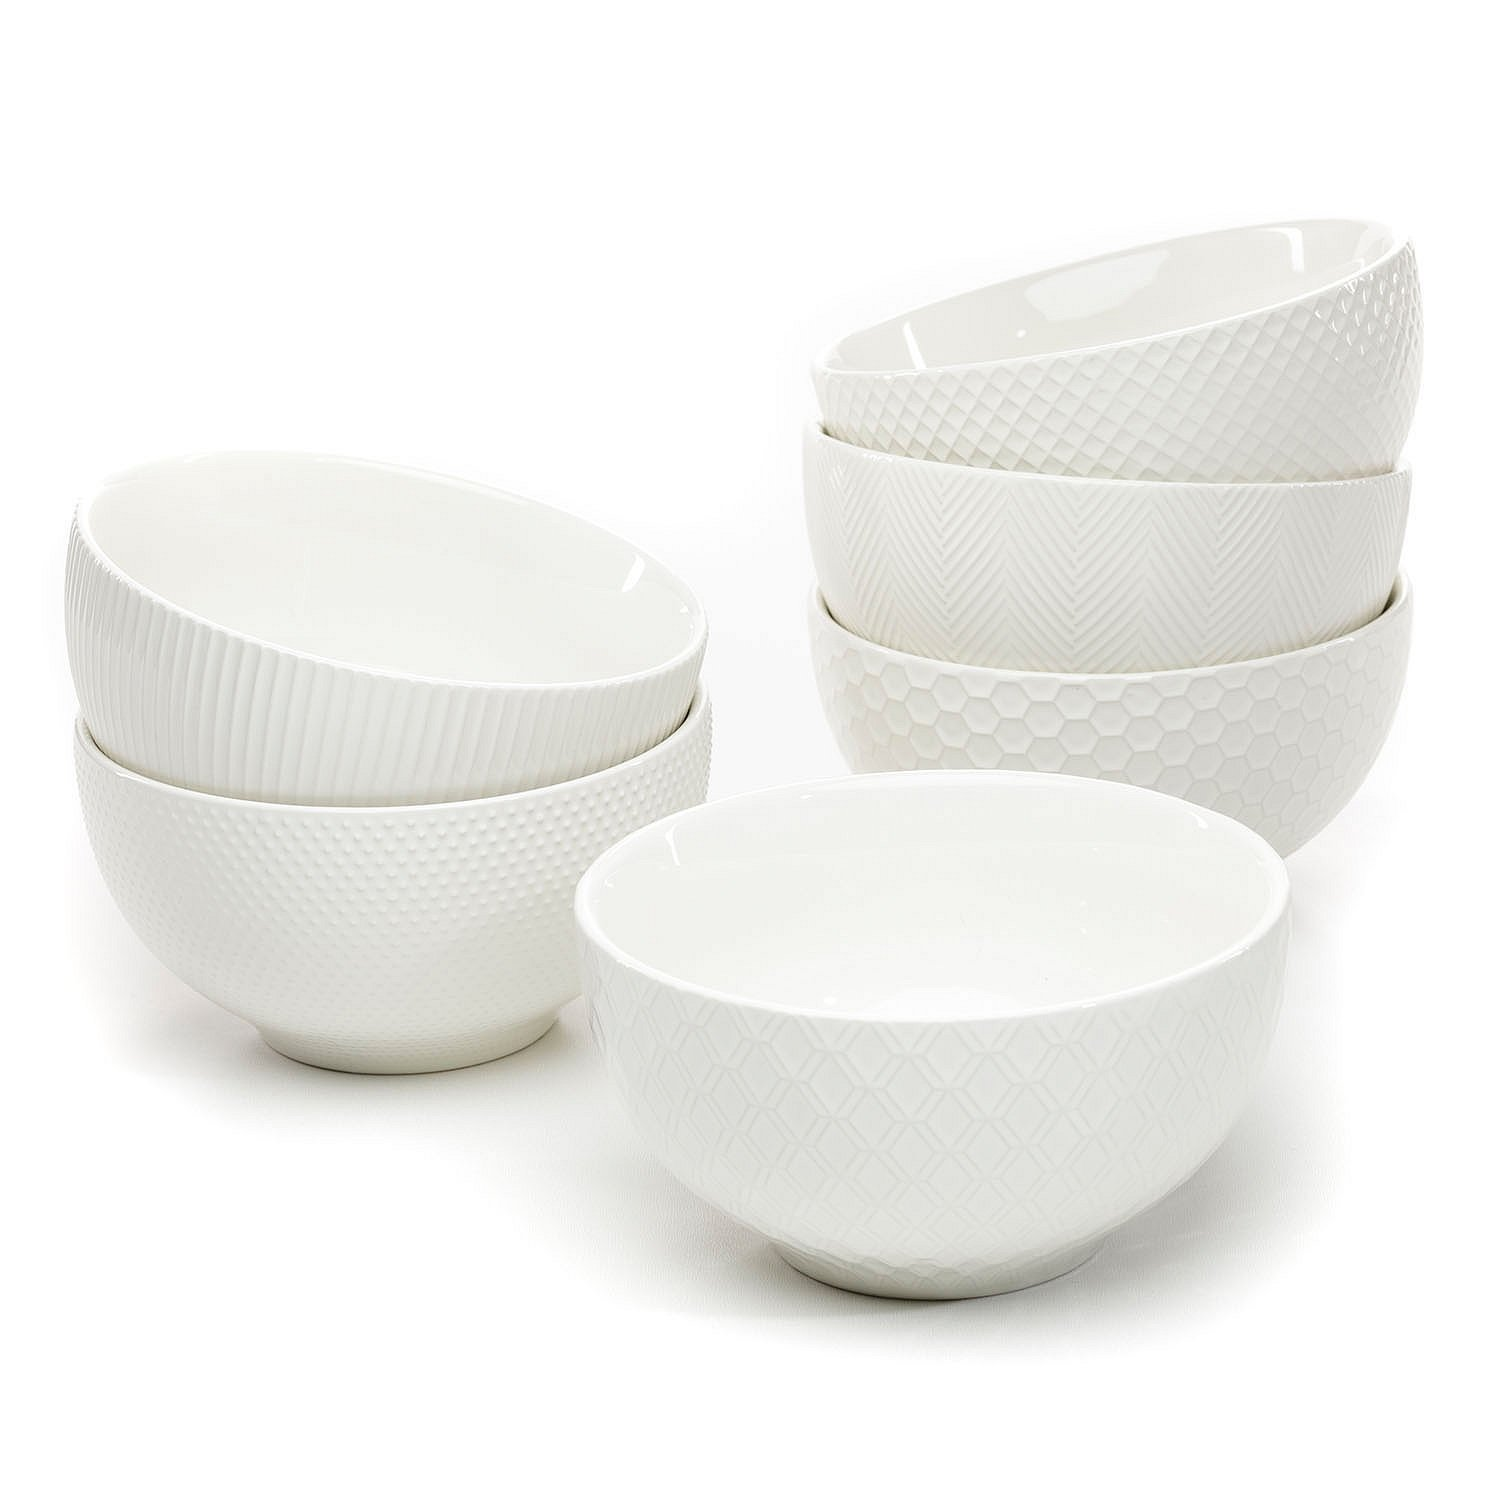 Amazon.com: Member\'s Mark Ceramic Textured Stoneware Bowls, Set of 6 ...